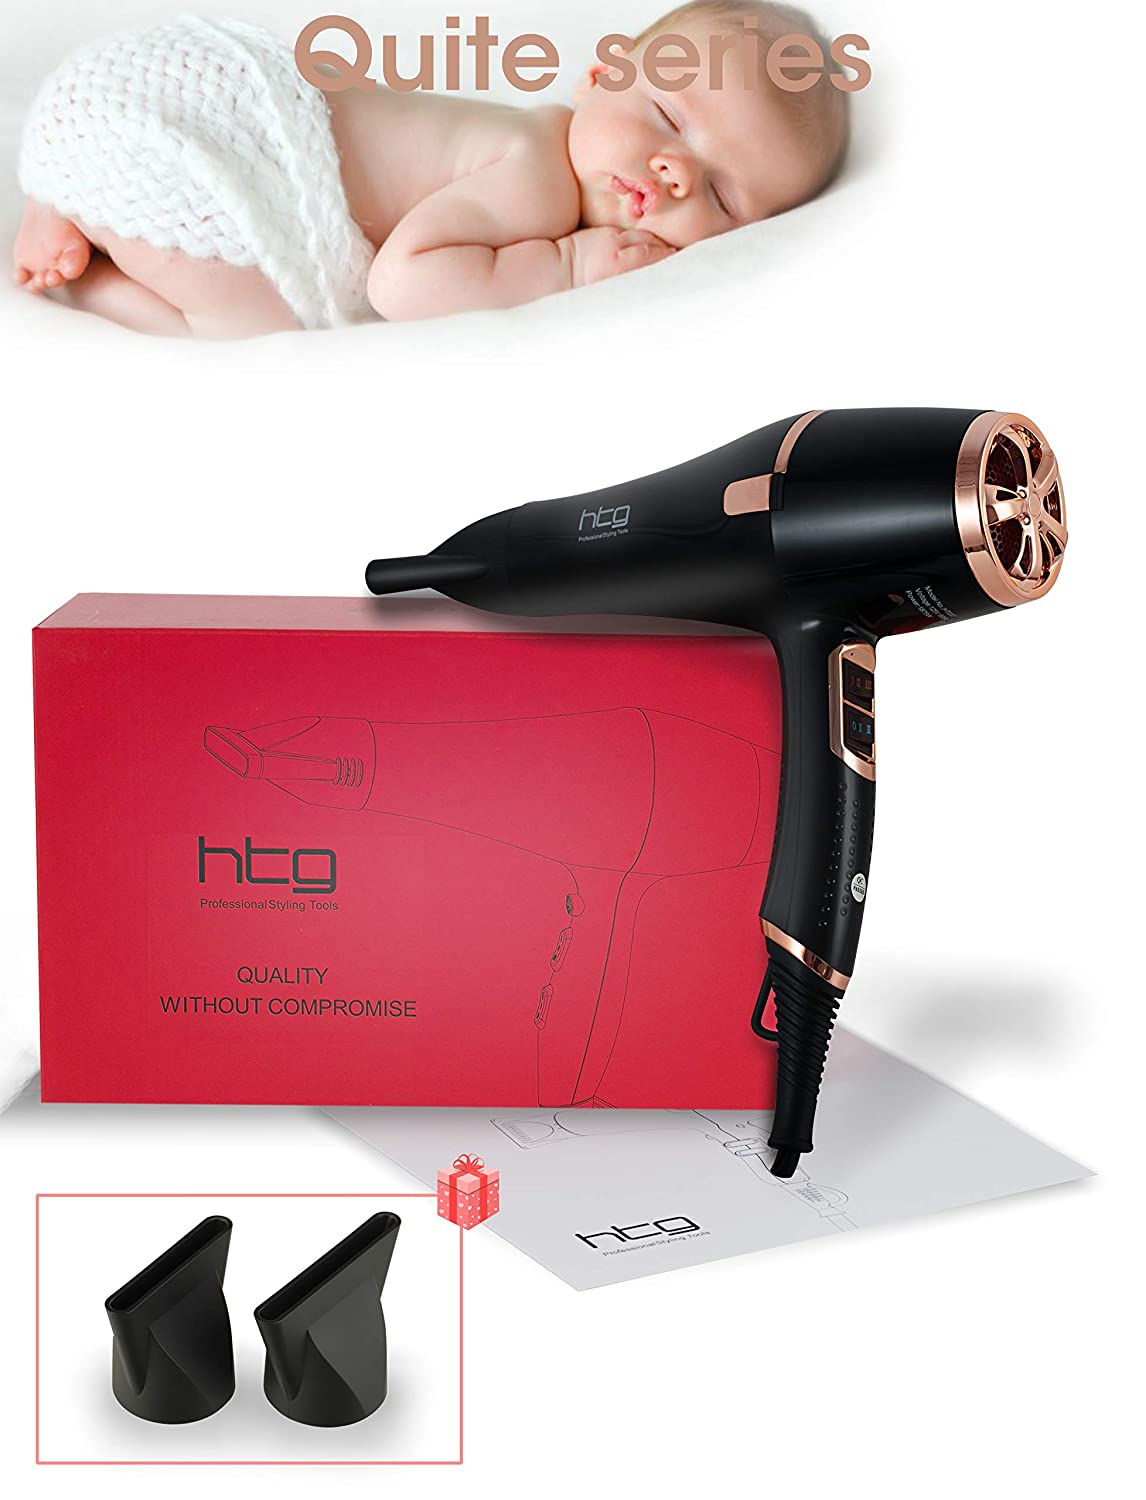 HTG Ionic Hair Dryer 1875W Negative Ion Blow Dryer 2 Speed and 3 Heat Setting AC Motor Salon Use Quality Hair Blow Dryer With Negative Ion and AC Motor Professional Hair Dryer HT037 Black